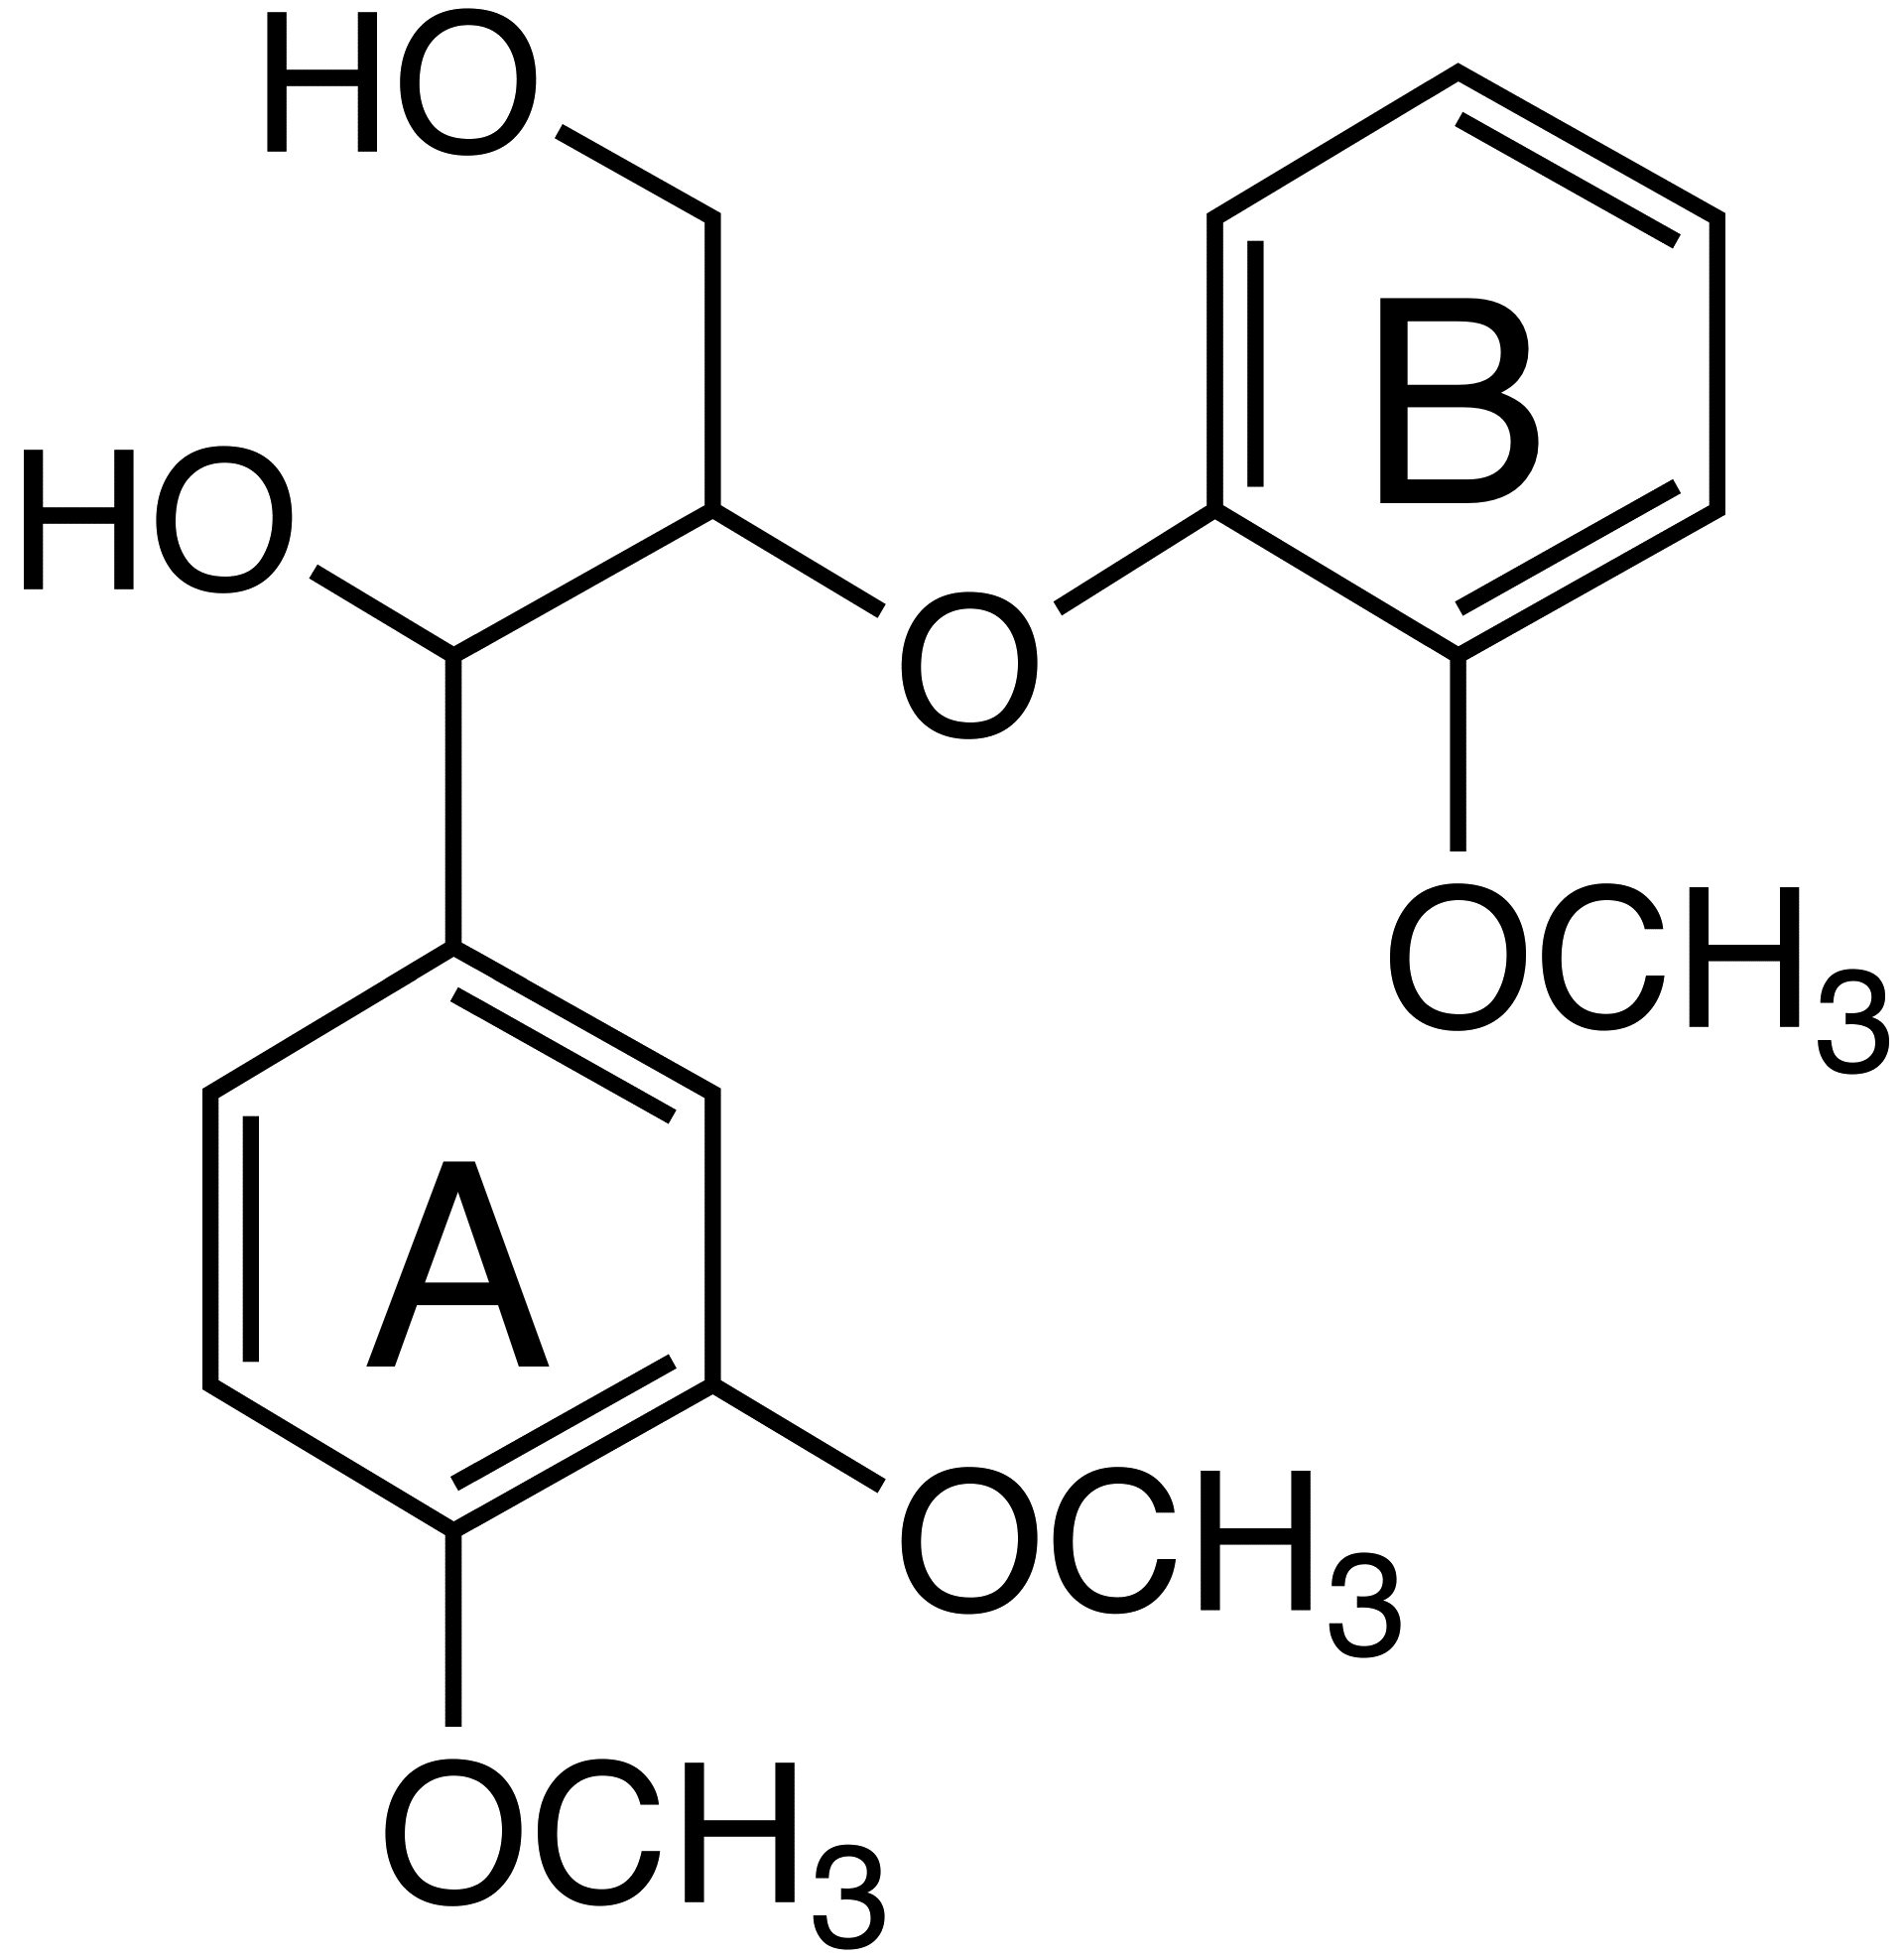 Veratrylglycerol-B-guaiacyl ether image